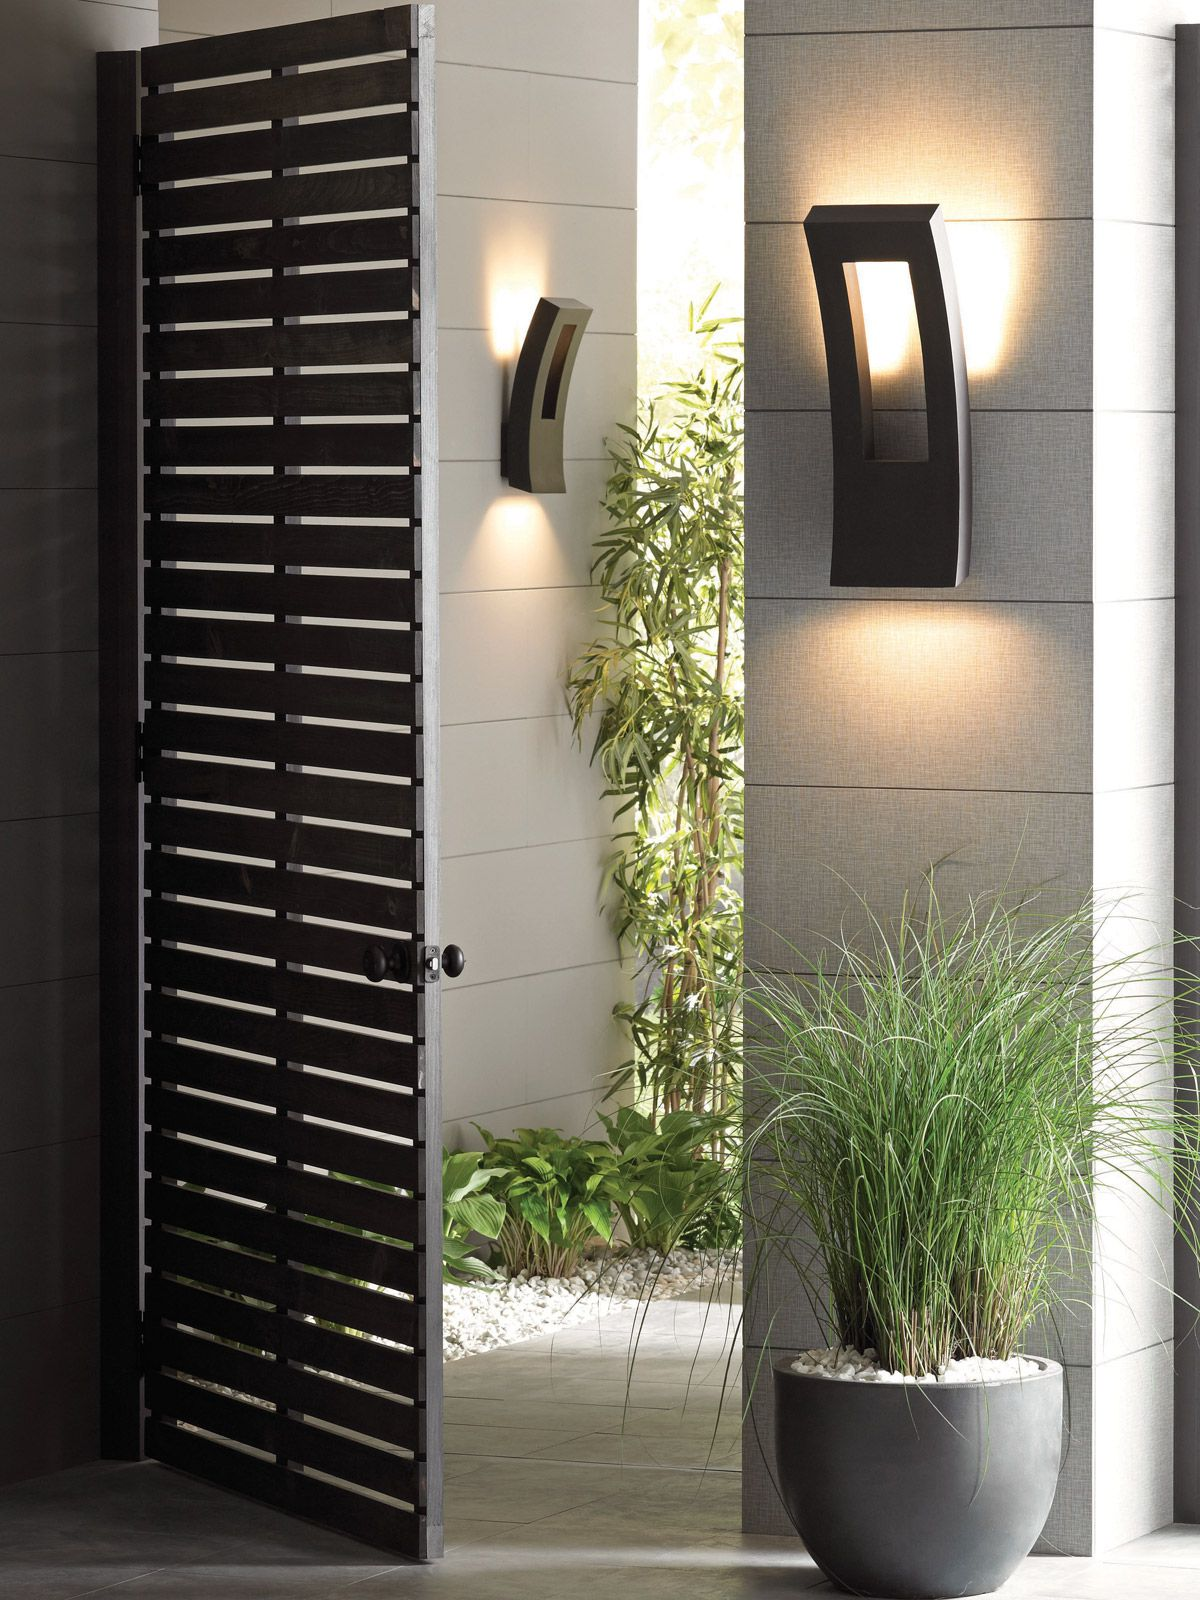 Modern Exterior Lights #22: 1000+ Images About Modern Outdoor Lighting On Pinterest | Terrace, Floor Lamps And Lamps